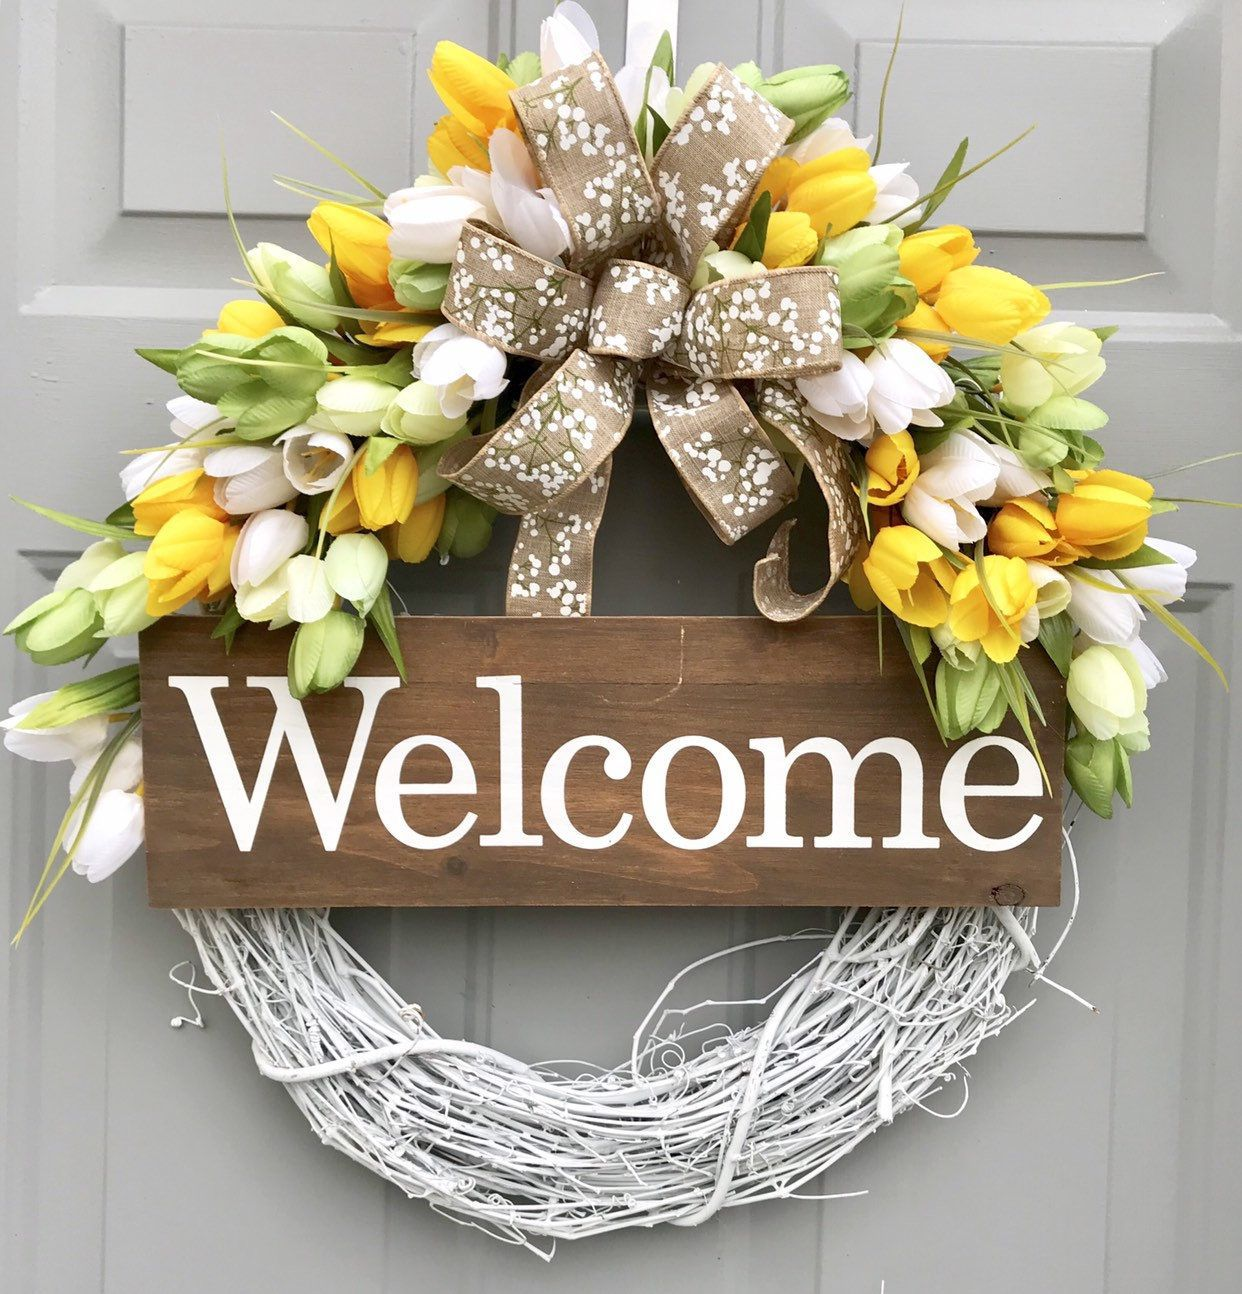 Photo of Welcome Tulip Wreath, Grapevine Wreath, Summer Floral Decor